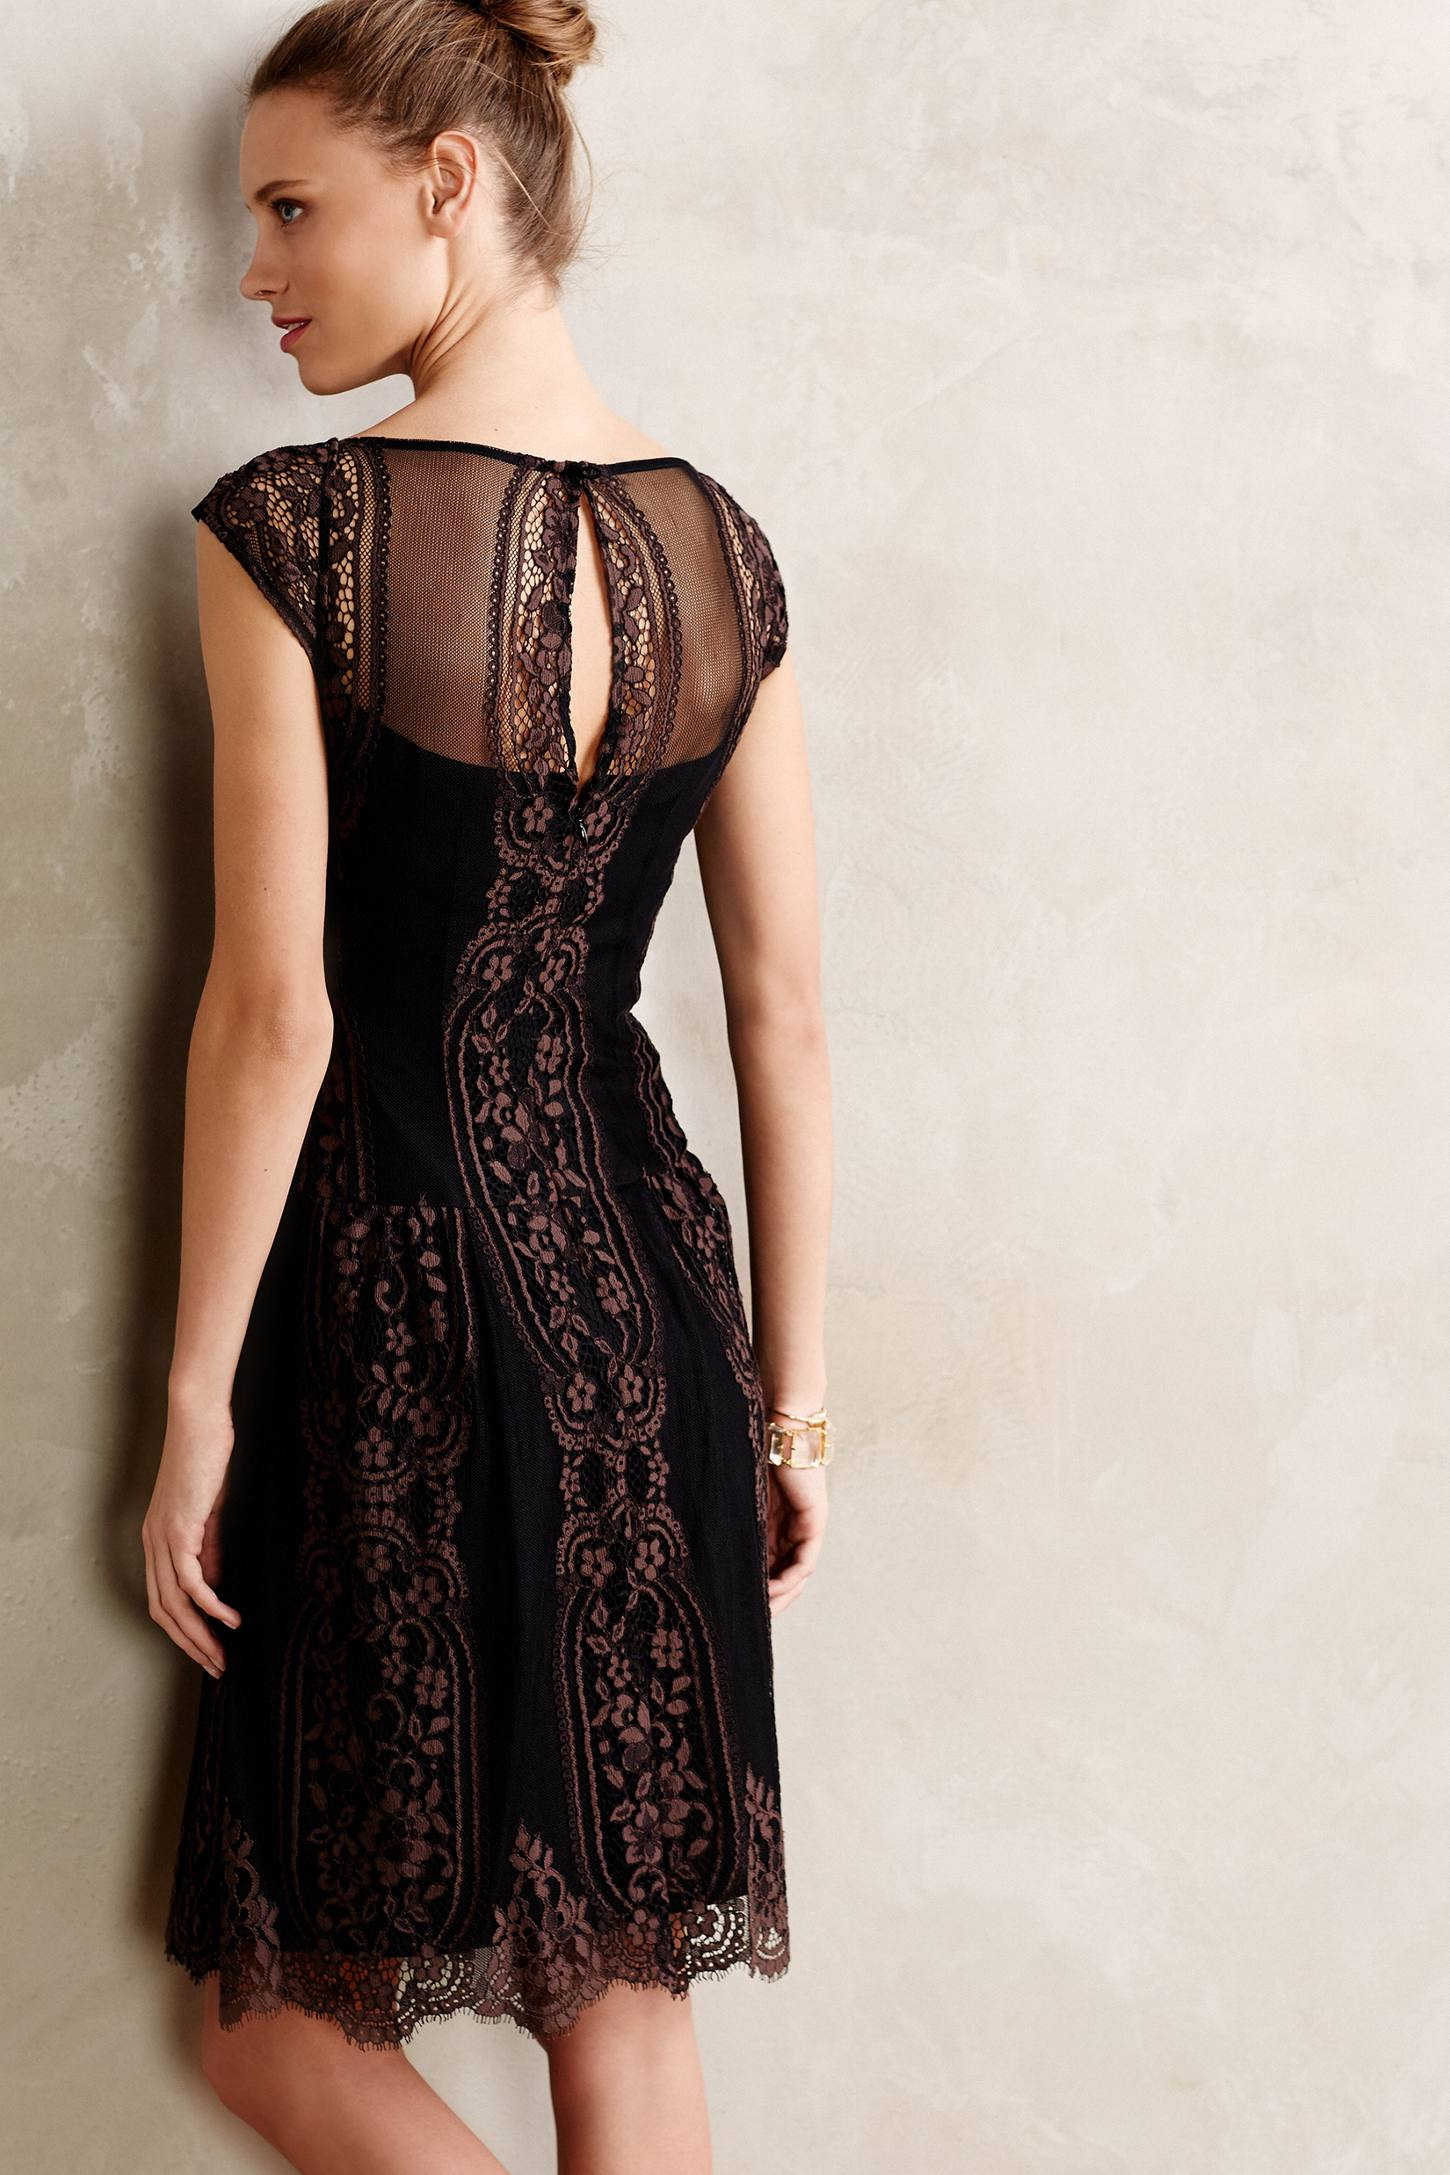 Nanette lepore Leopold Lace Dress in Brown | Lyst